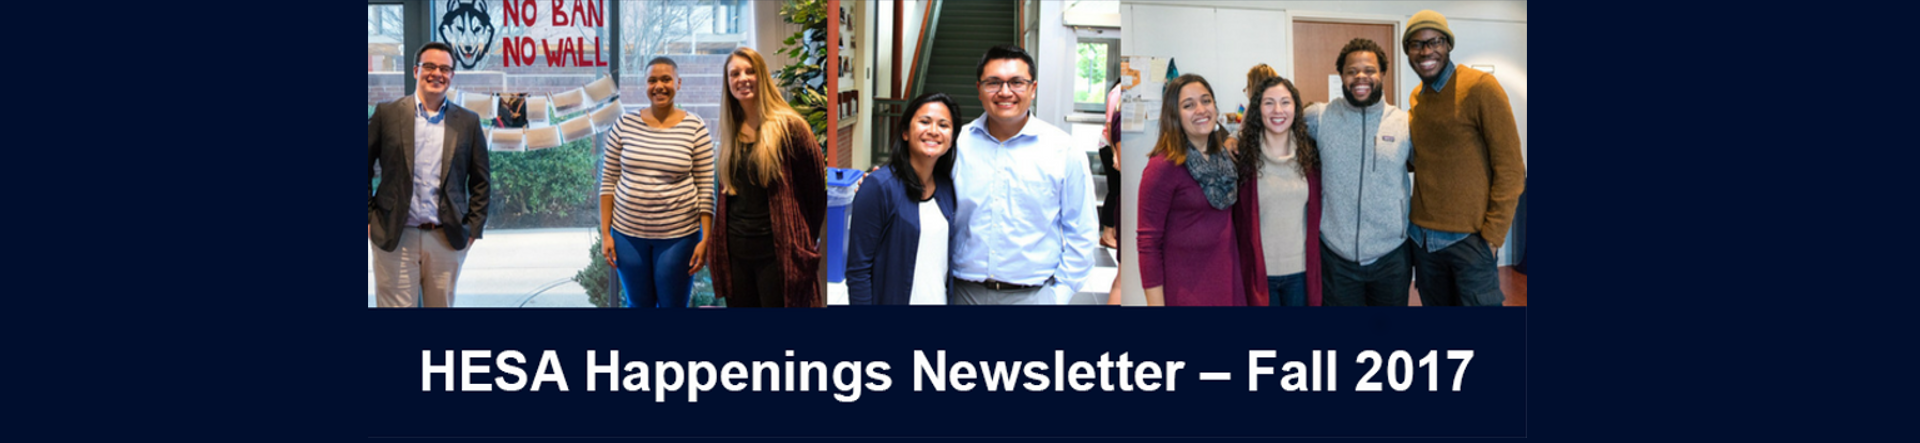 HESA Happenings Newsletter Header